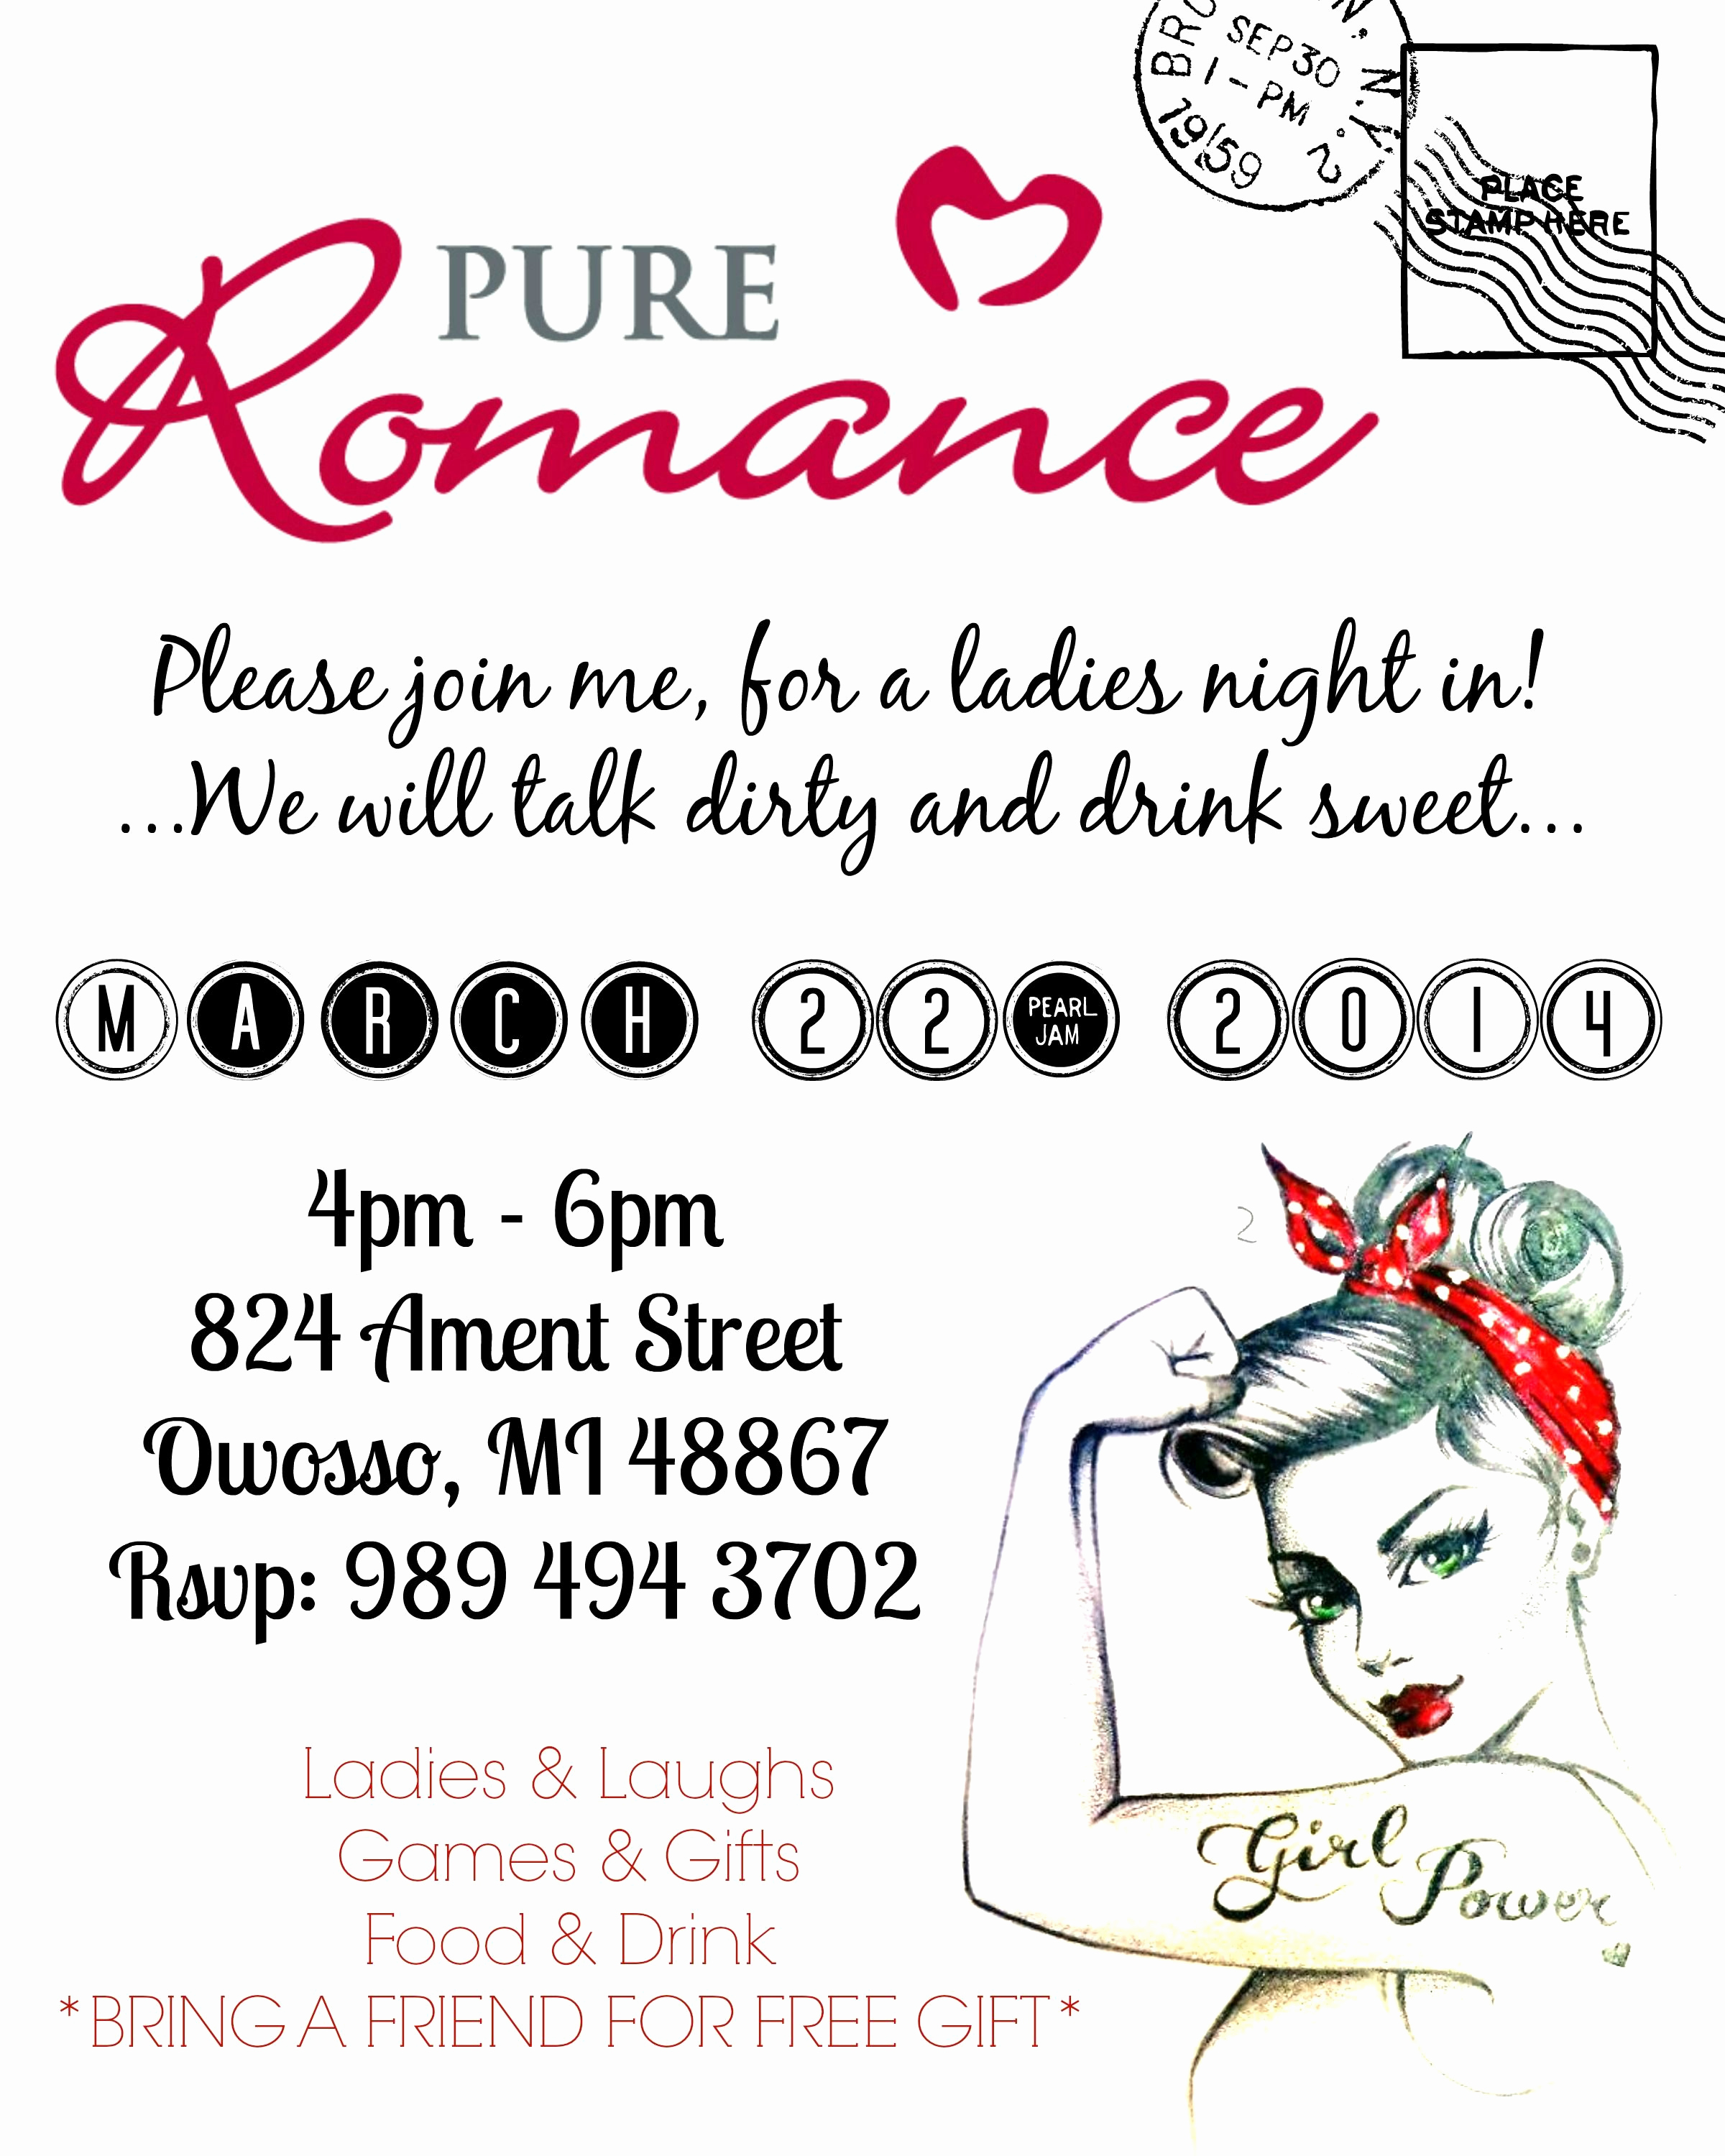 Pure Romance Party Invitation Wording Unique Ericka Good Pure Romance Party Invitation